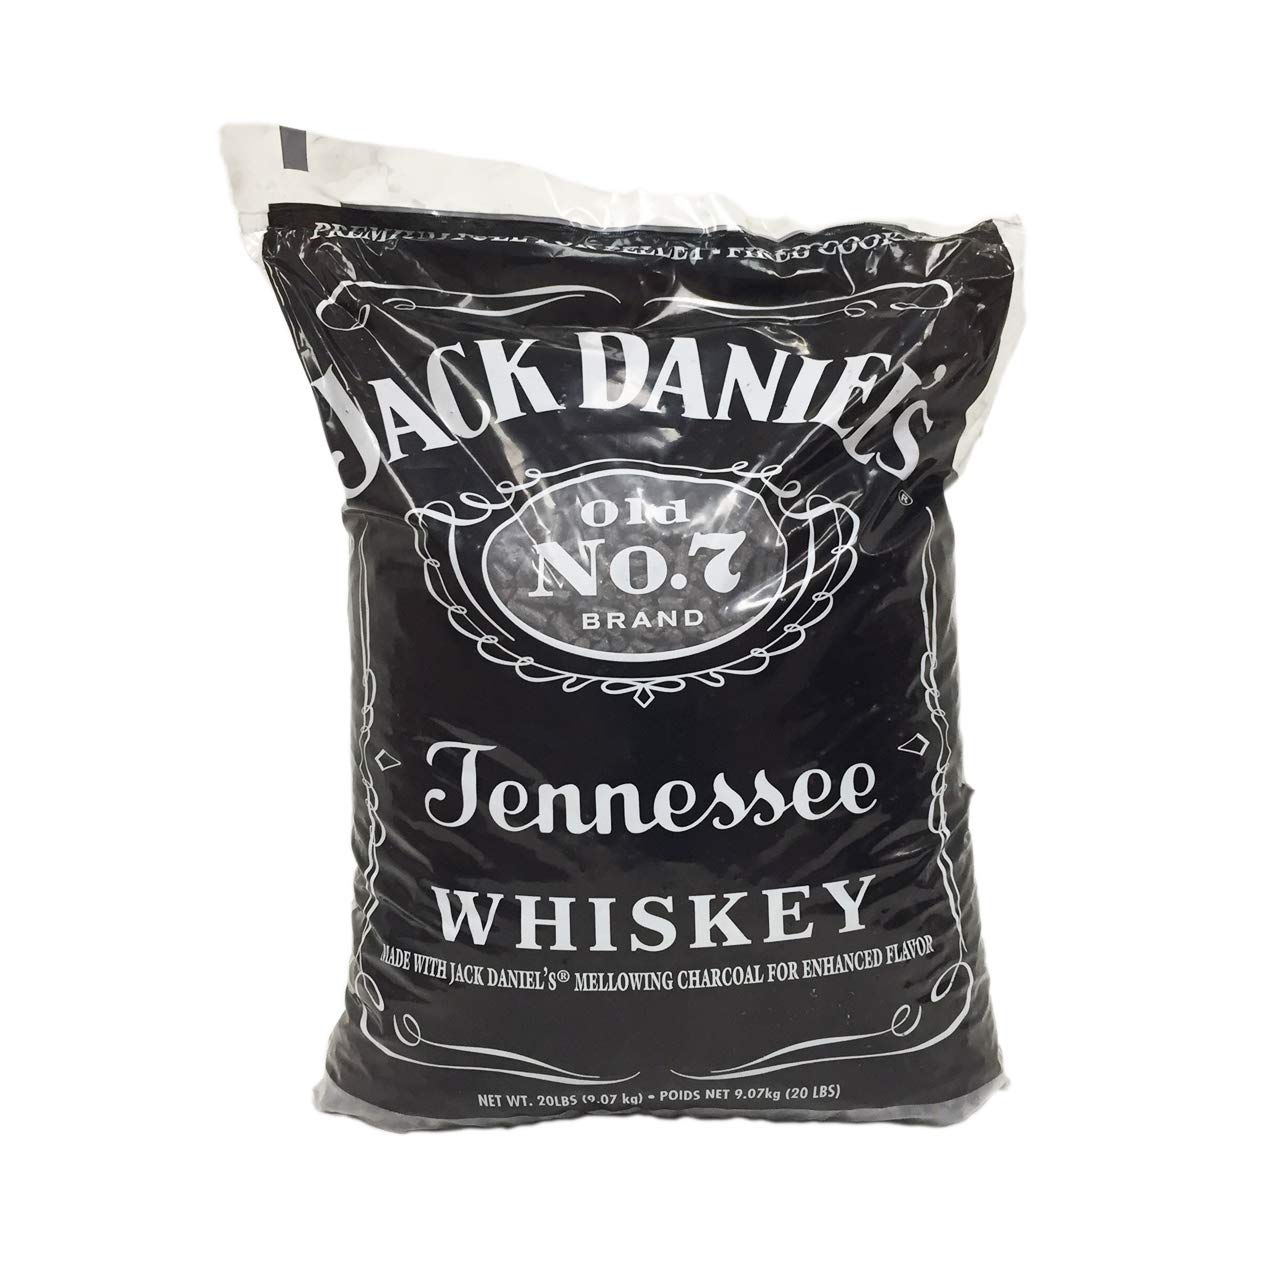 BBQR's Delight Jack Daniels Smoking BBQ Pellets 20 Pounds BBQR' s Delight